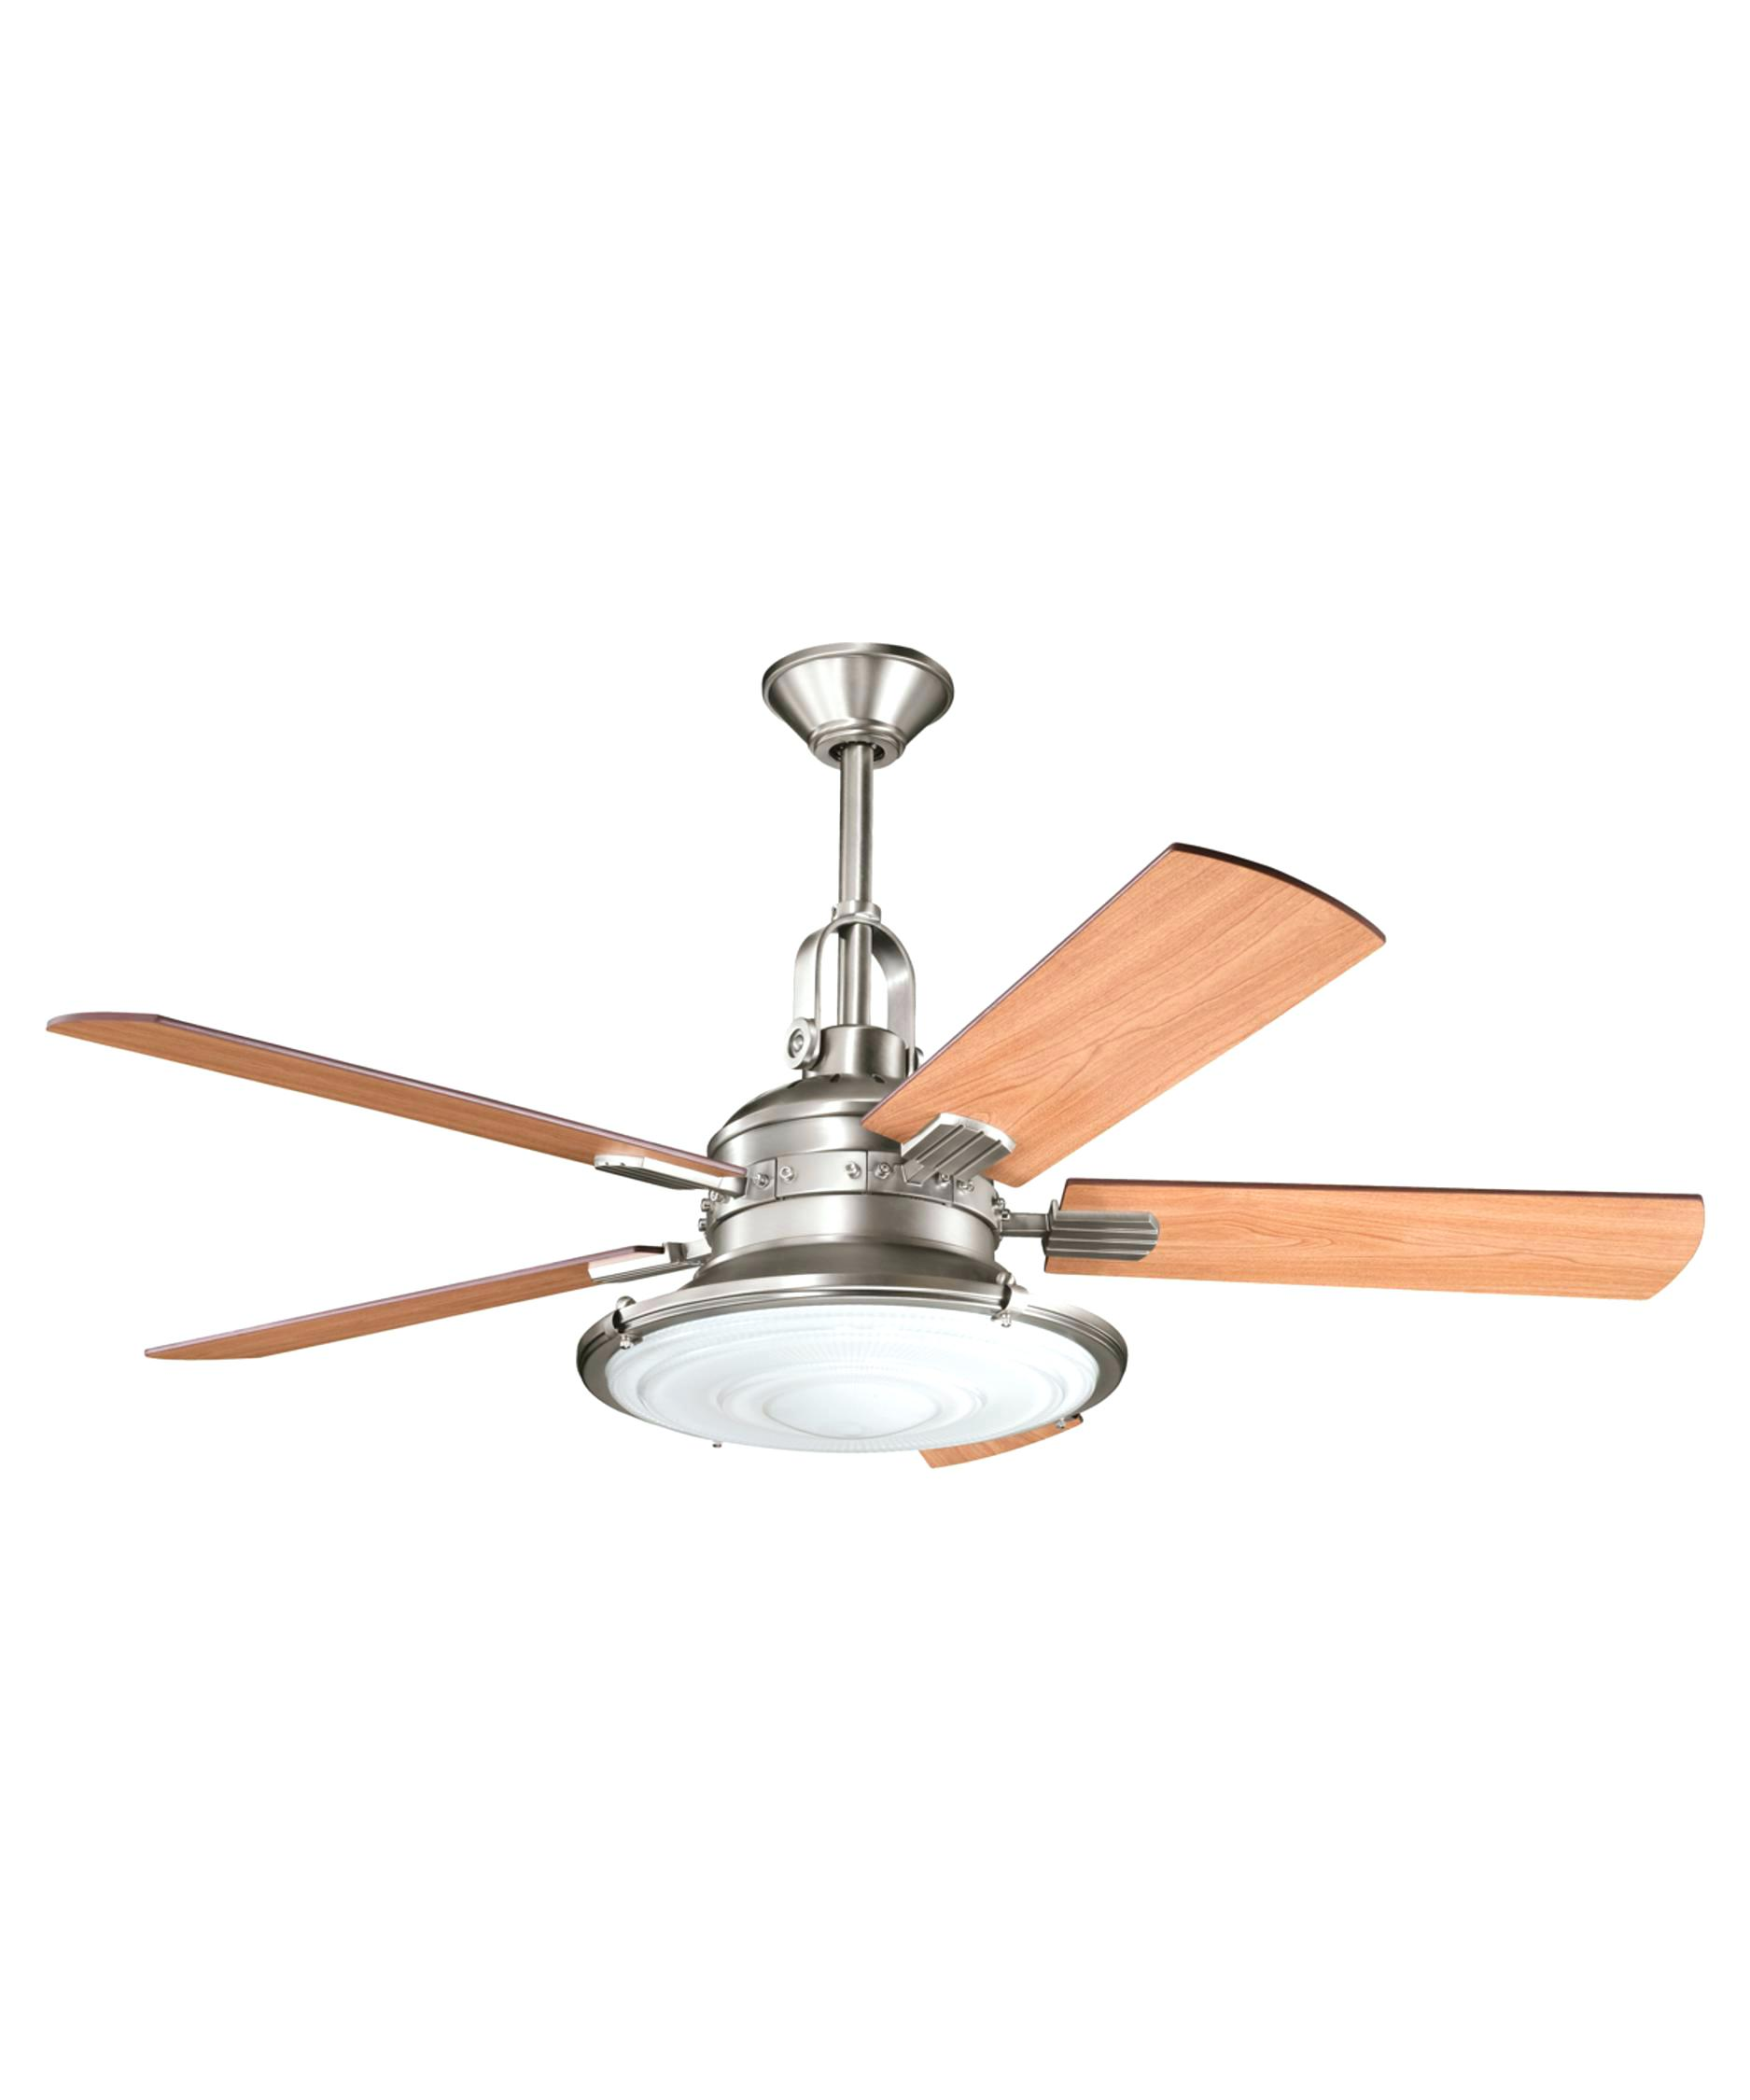 10 reasons to Enclosed blade ceiling fans